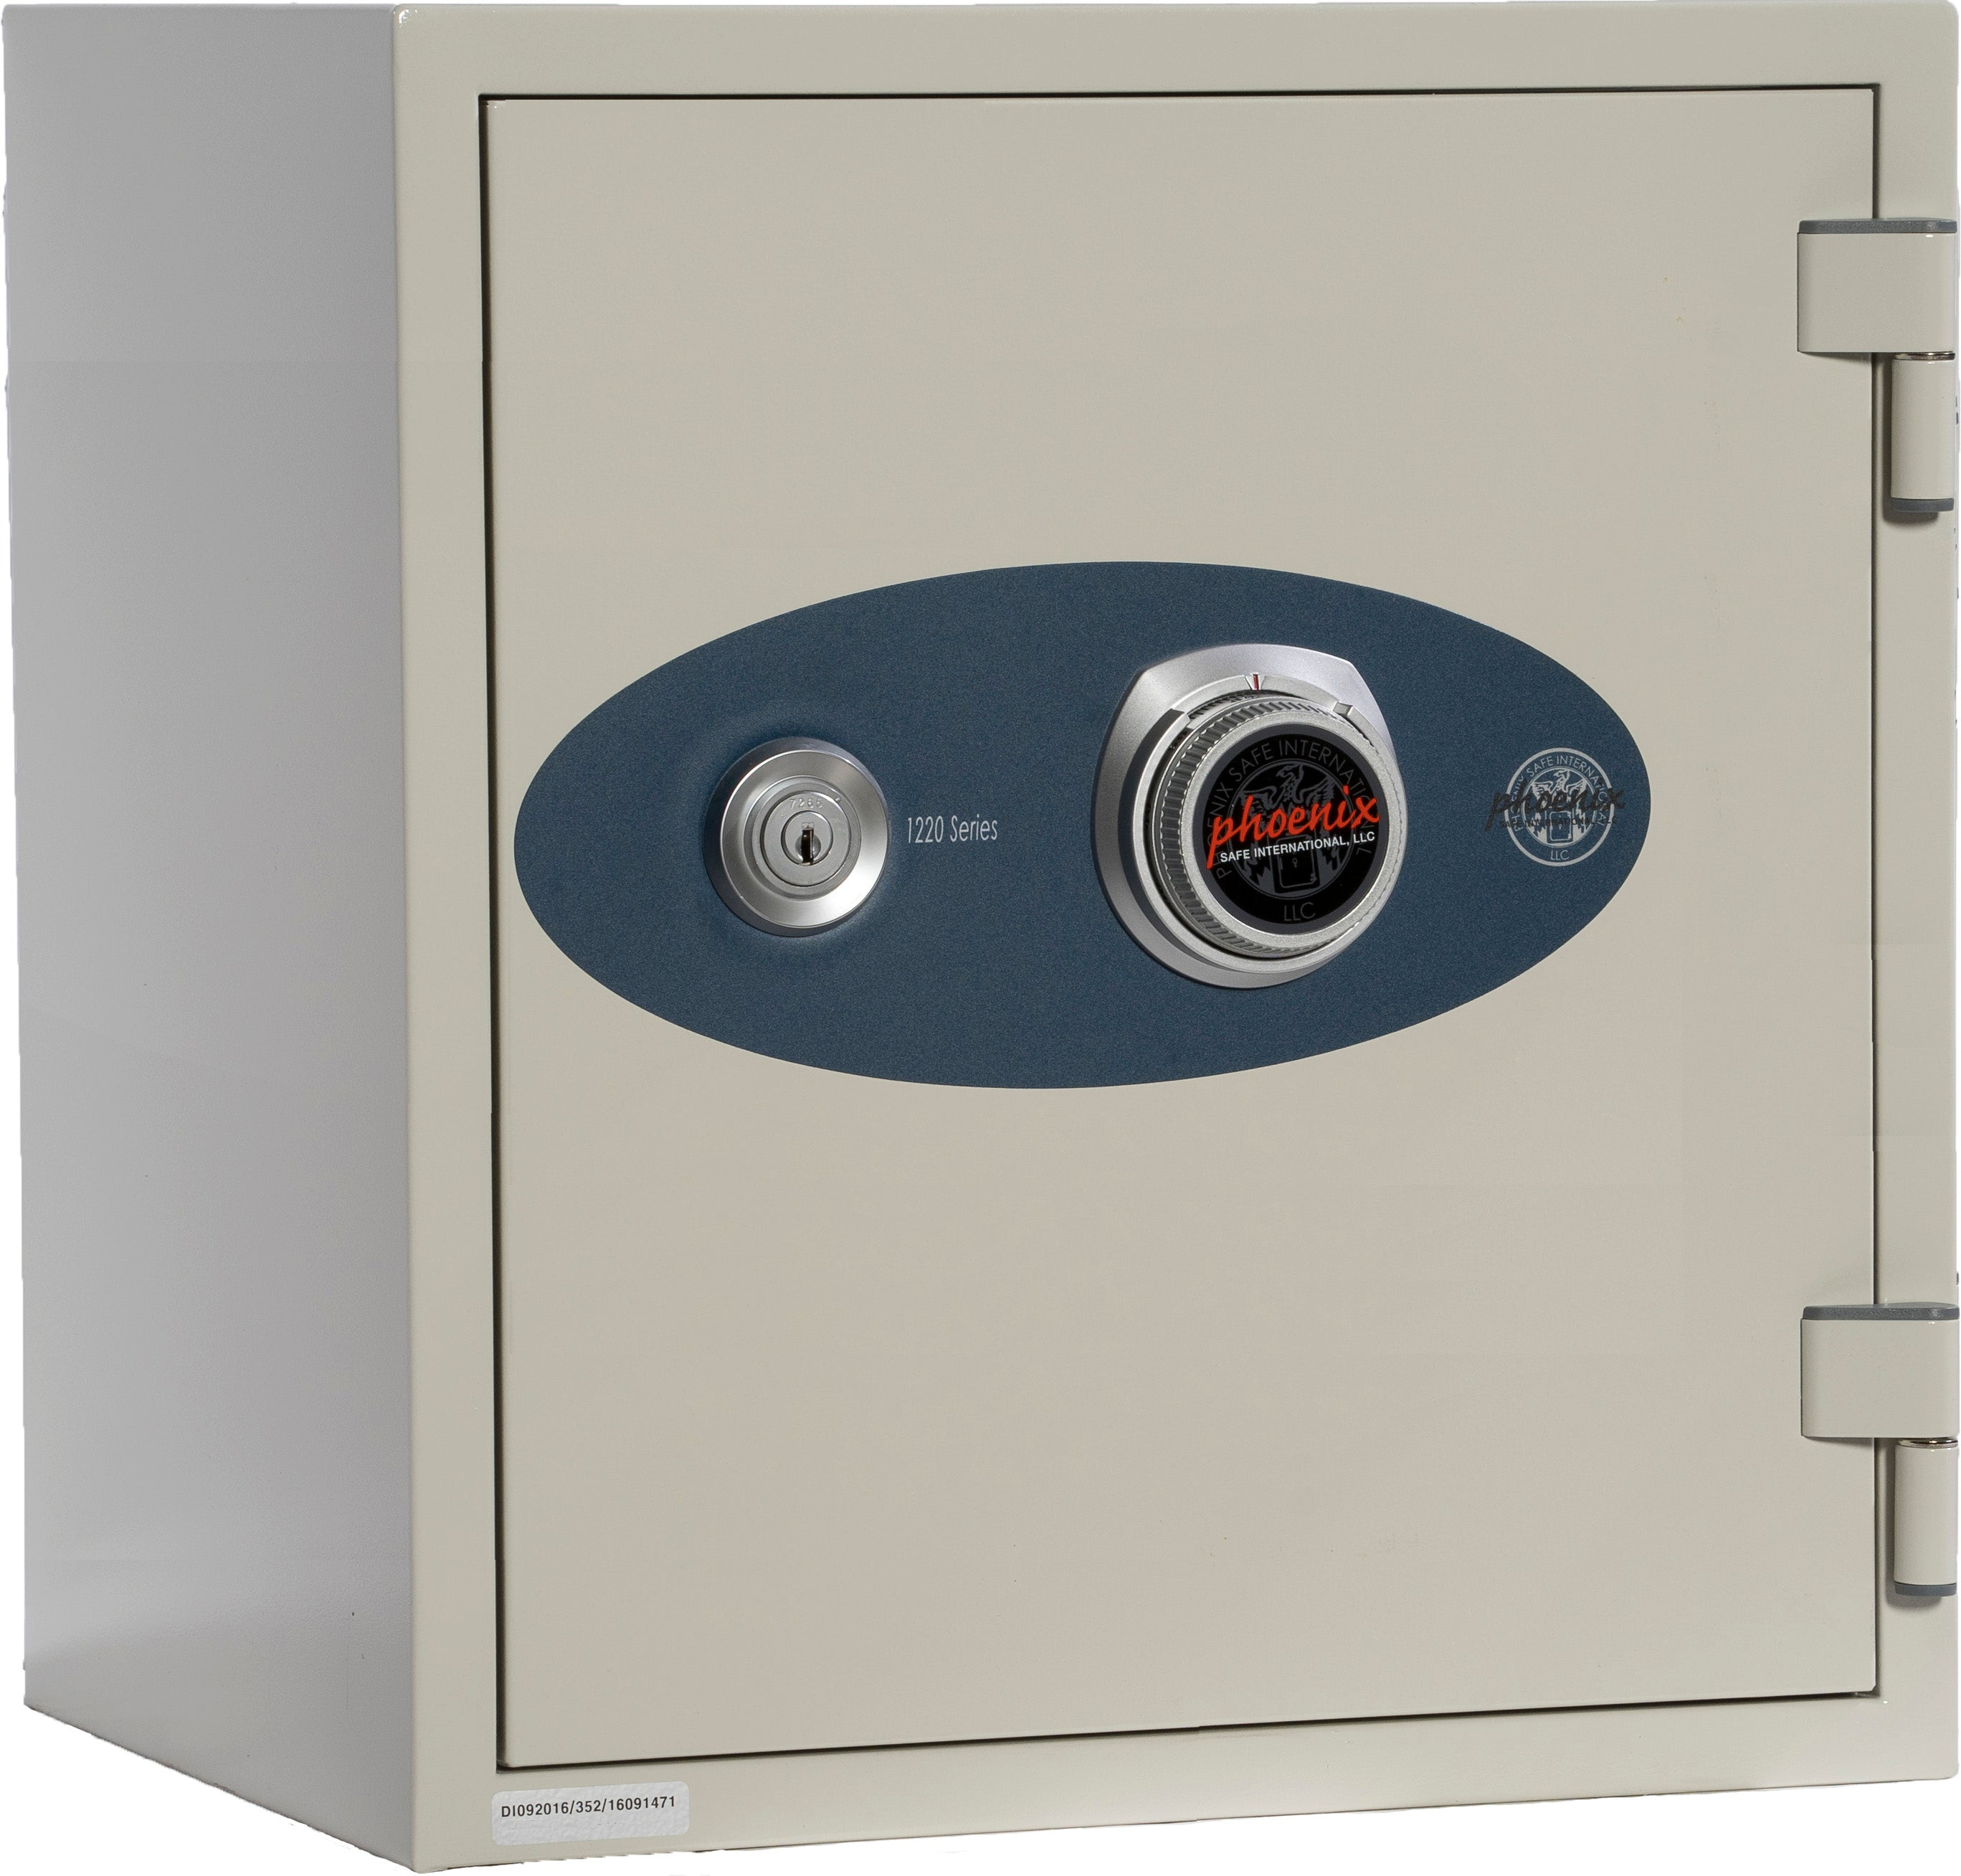 Olympian Key & Combination Dual Control Fire Resistant Safe 1.3 cu ft